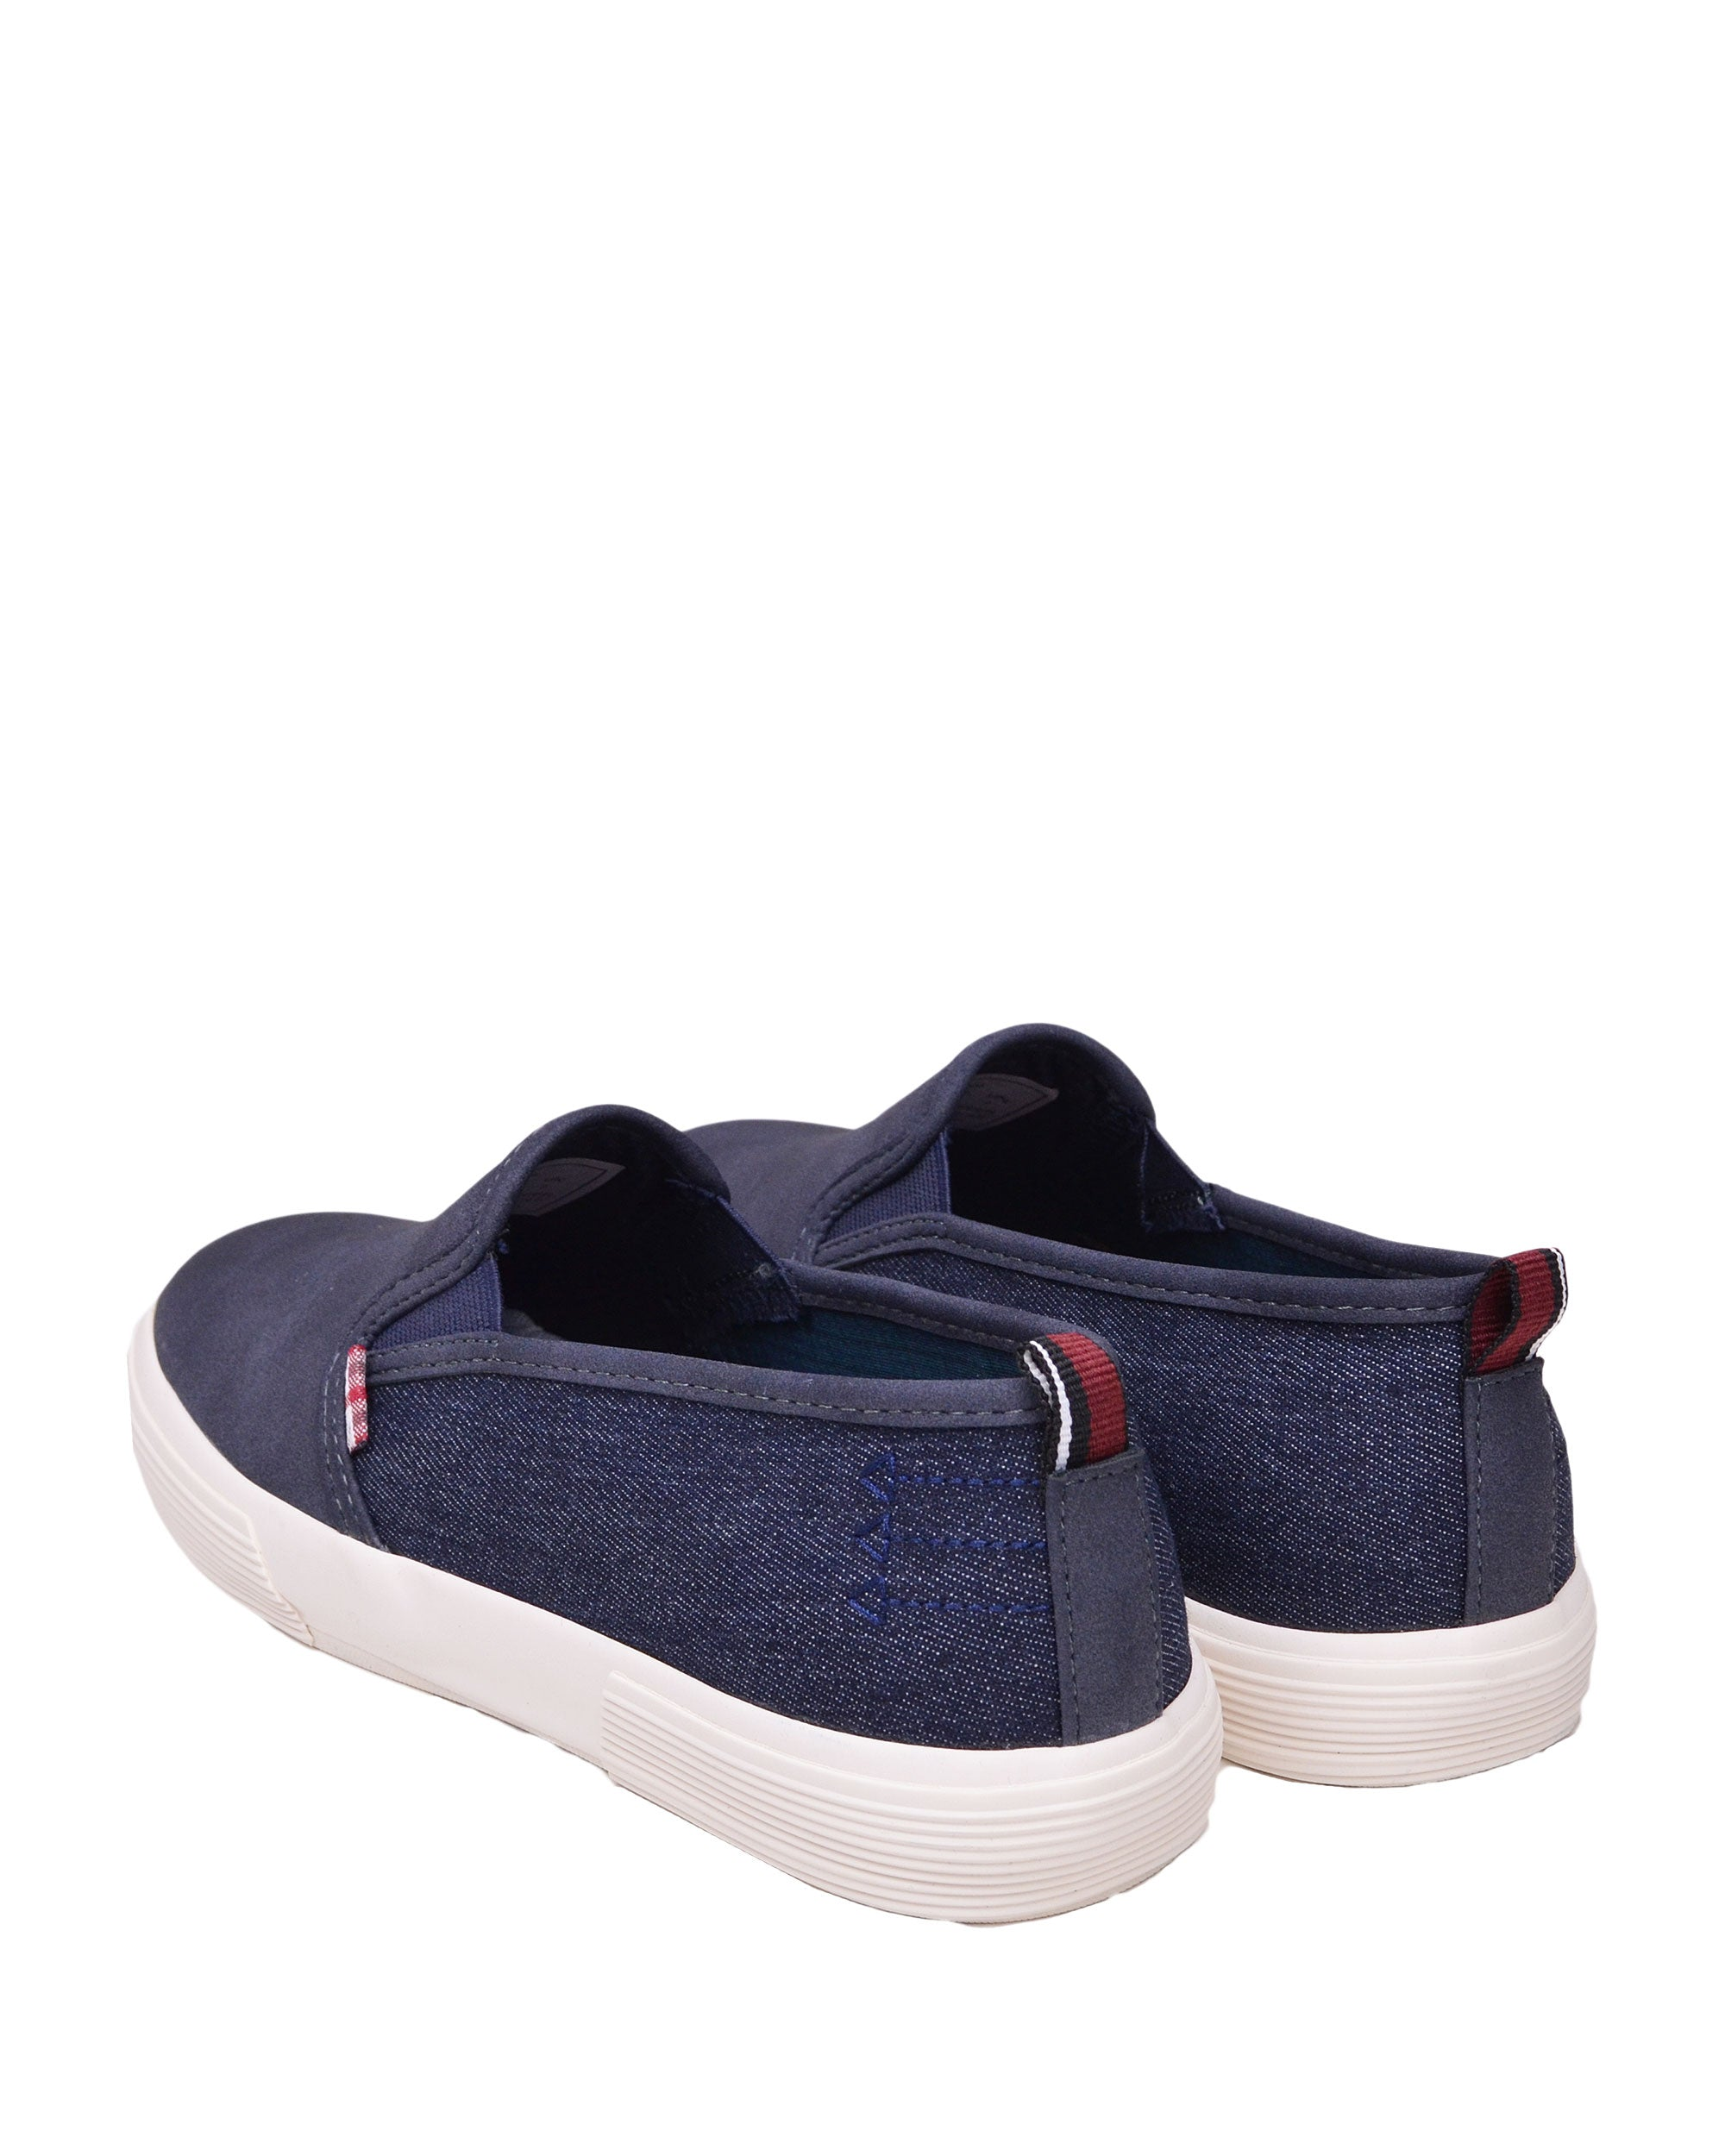 cd966d48ec7 Bradford Denim Suede Slip-on Sneaker - Navy – Ben Sherman